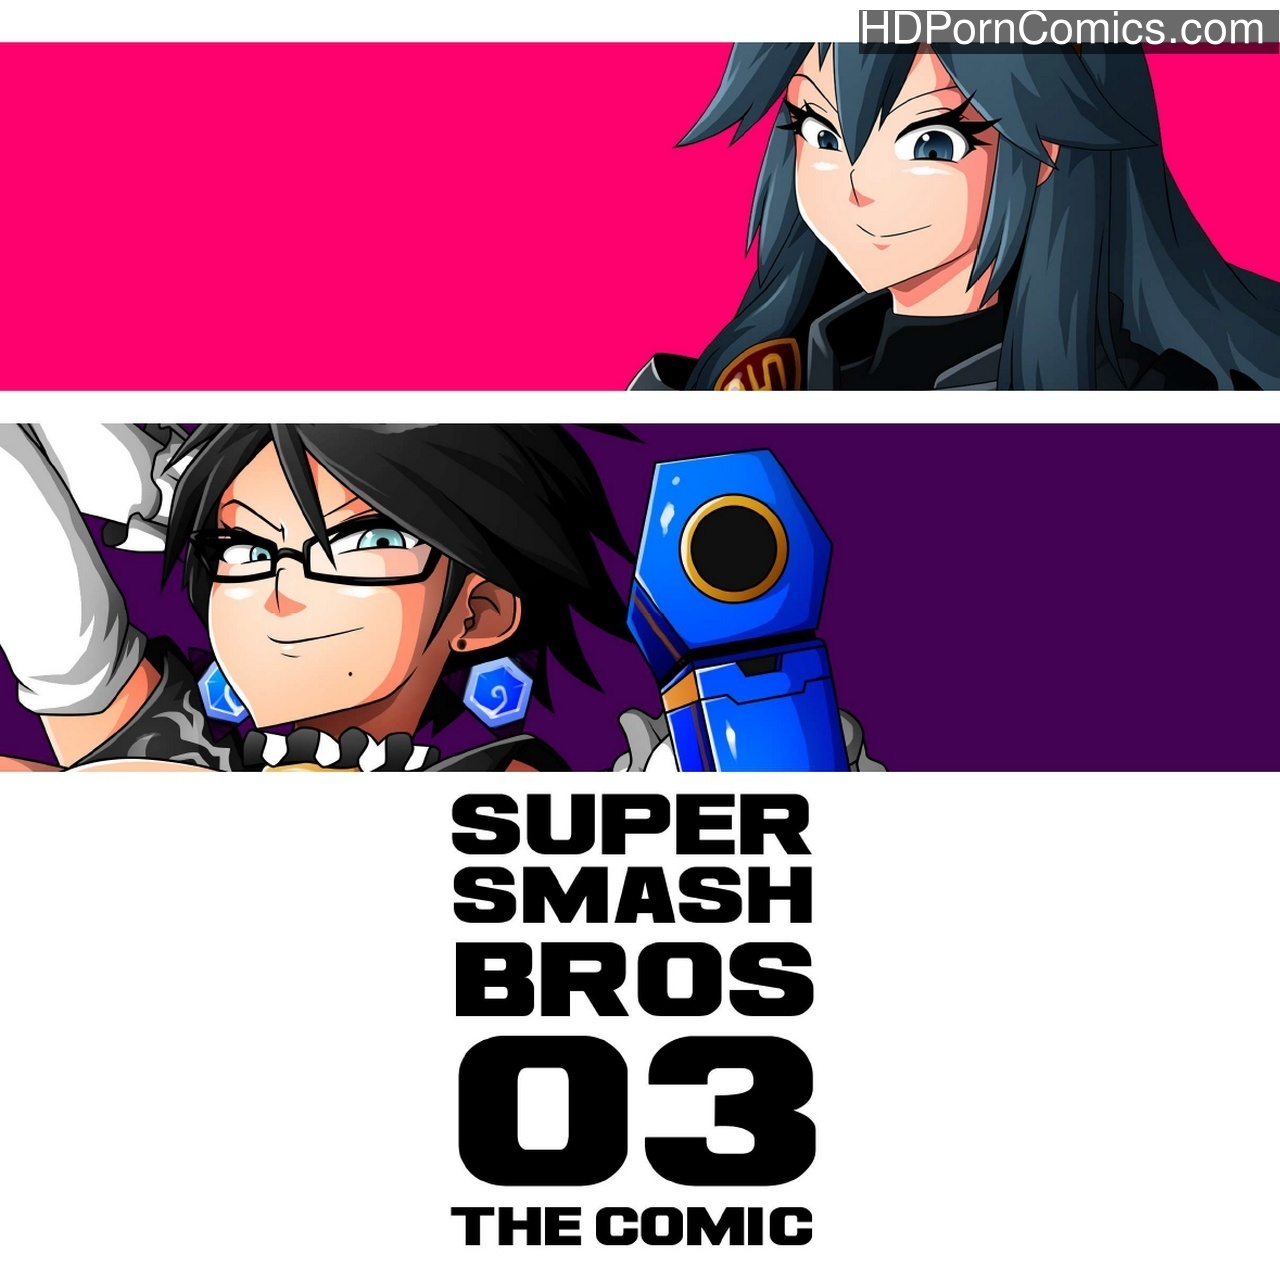 Super-Smash-Bros-31 free sex comic